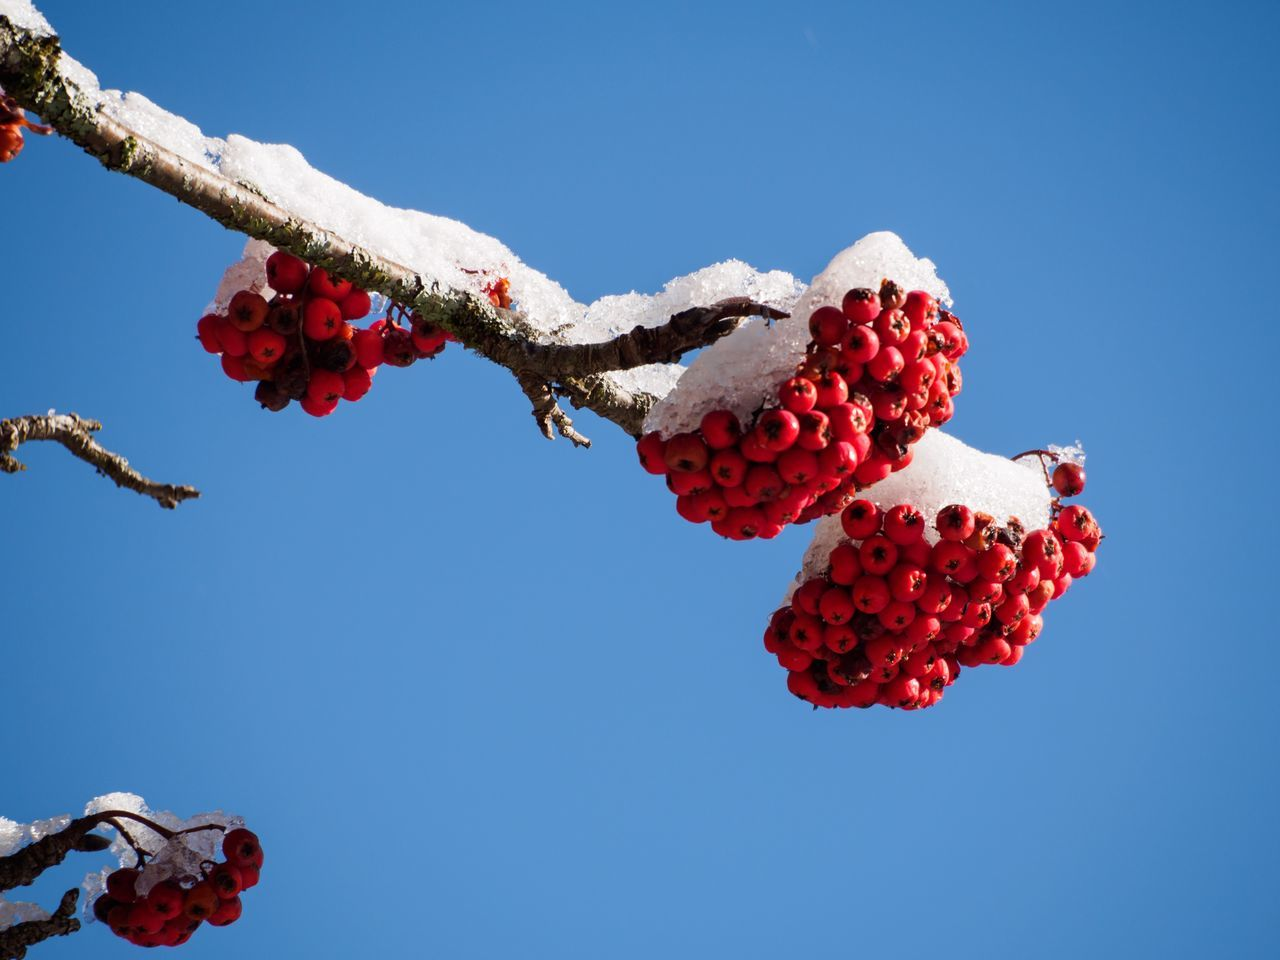 Red No People Snow Berries Berries On A Branch Fruits Winter Blue Sky Day Freshness Nature Beauty In Nature Branch Scenics Sun Outdoors Sky Blue Clear Sky Sunlight EyeEmNewHere